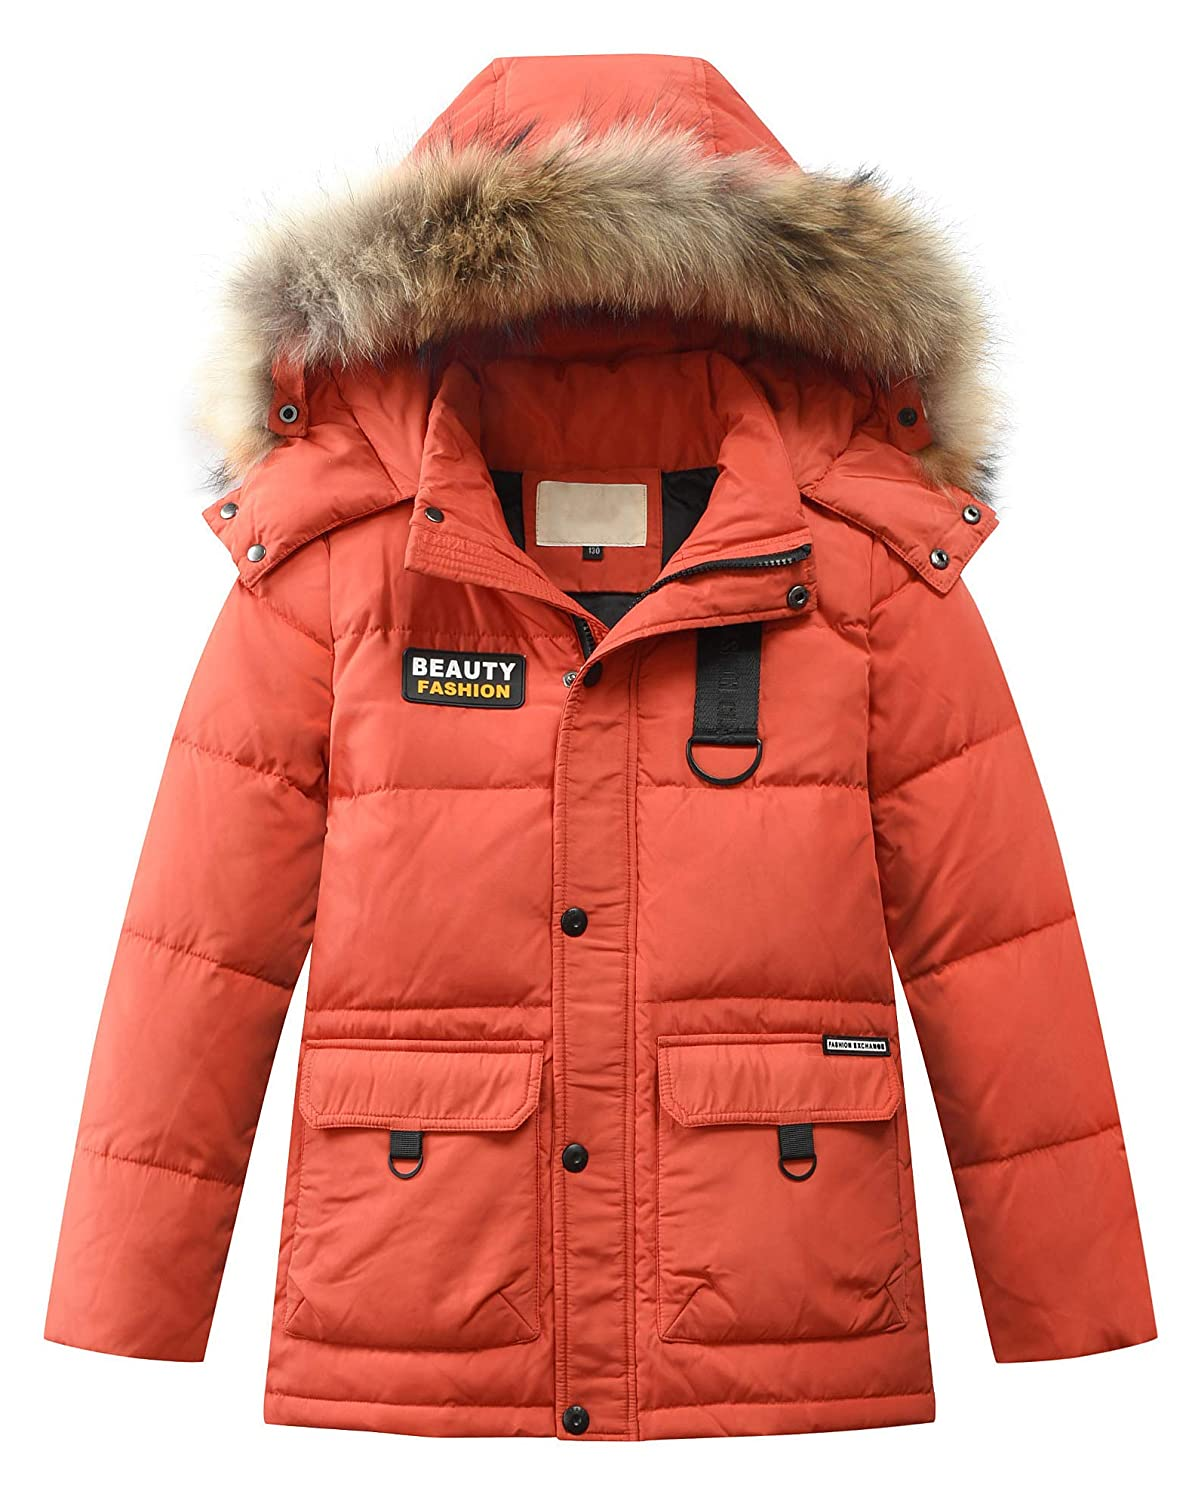 Boy Thick Winter Parka Mid Duck Down Puffer Padded Overcoat Hooded Jacket Coat JiaYou USNR021